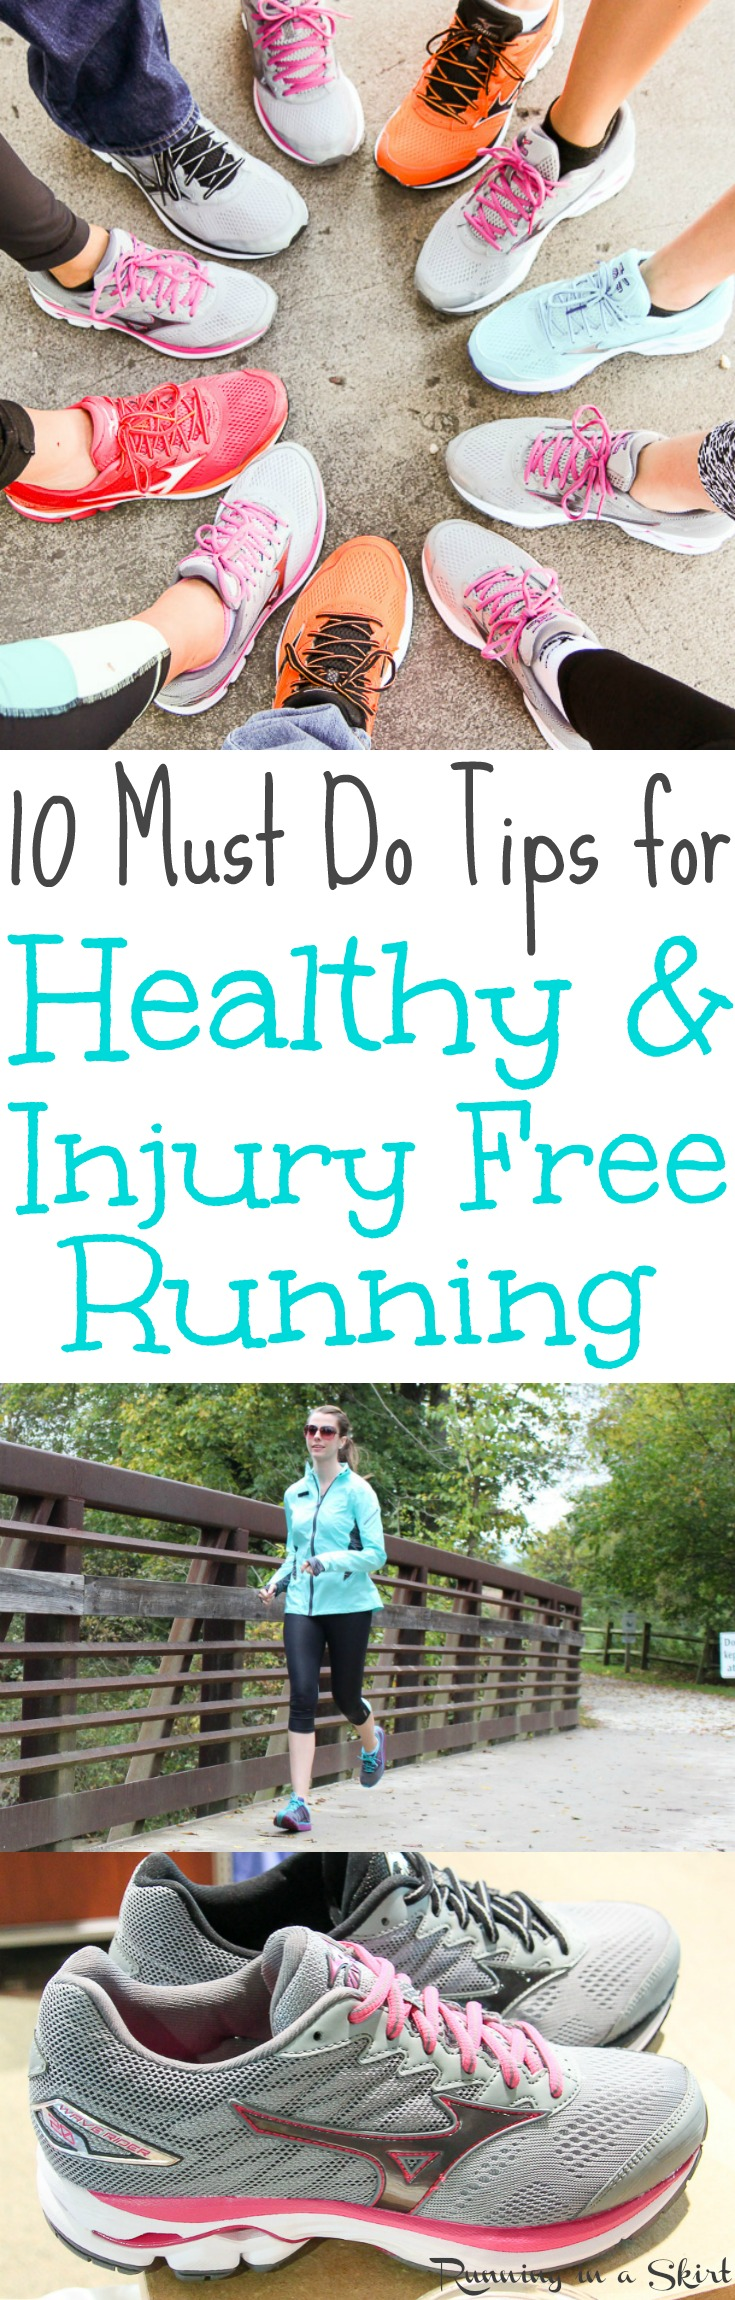 10 Must Do Tips for Healthy and Injury Free Running for life / Running in a Skirt